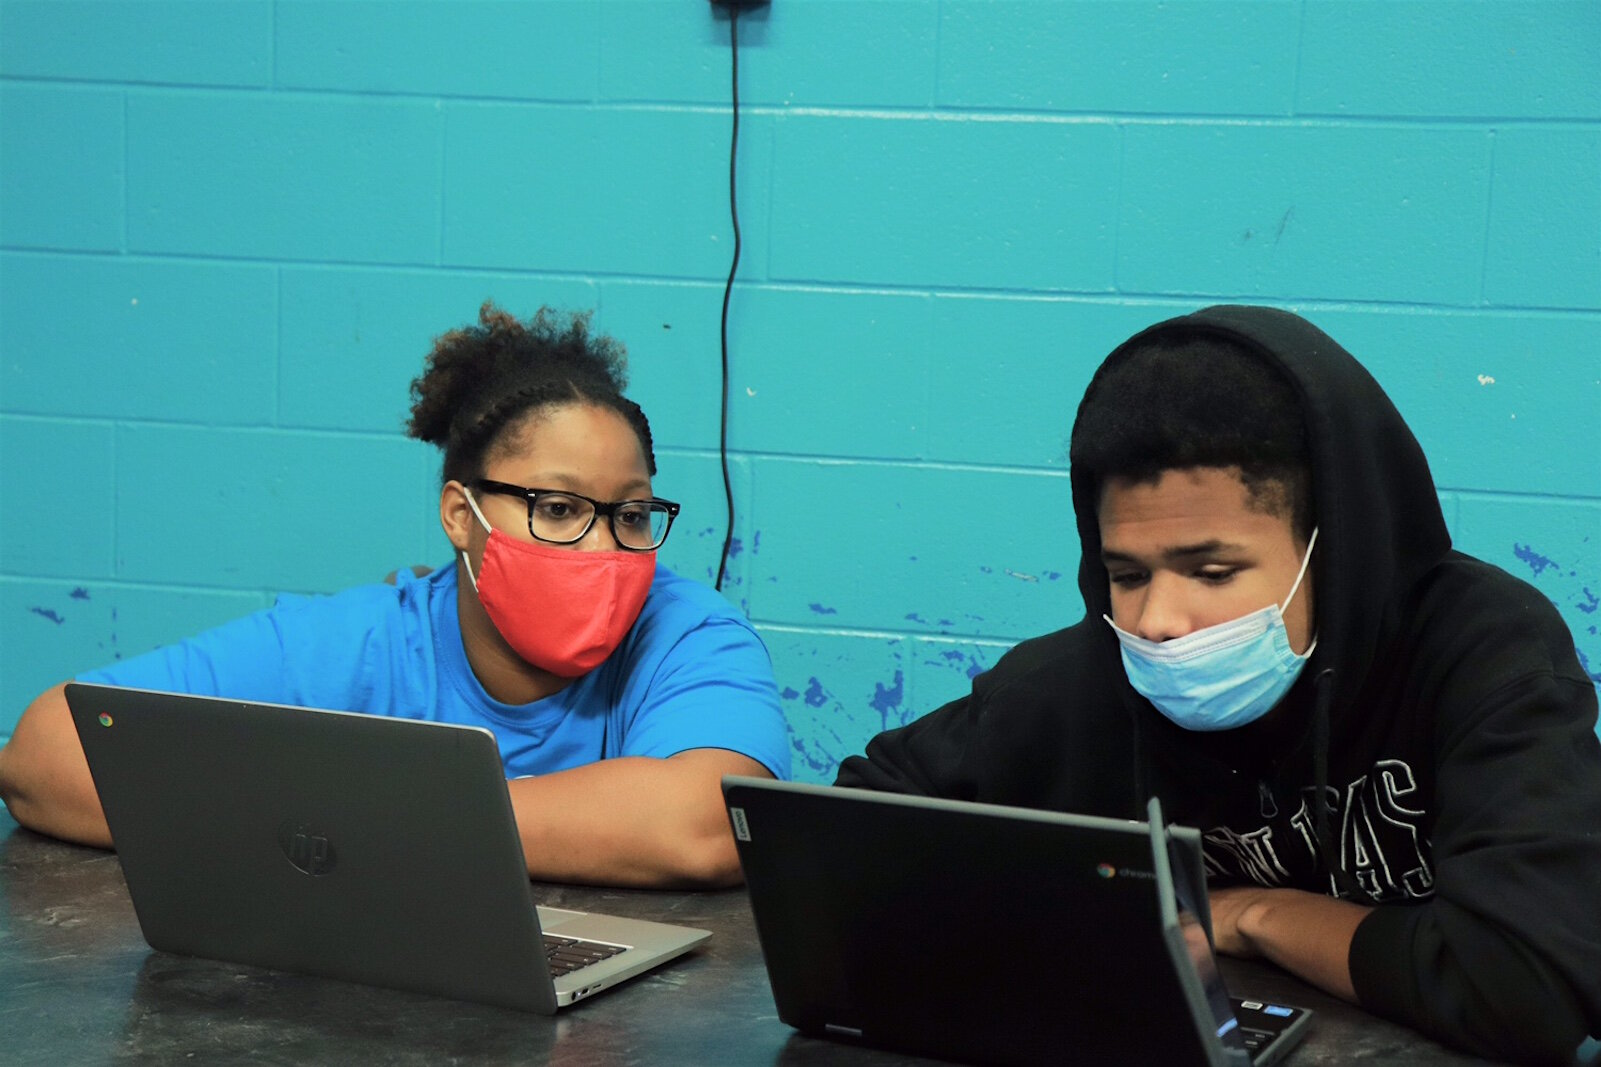 Youngsters compare notes on laptops at the Boys & Girls Club.